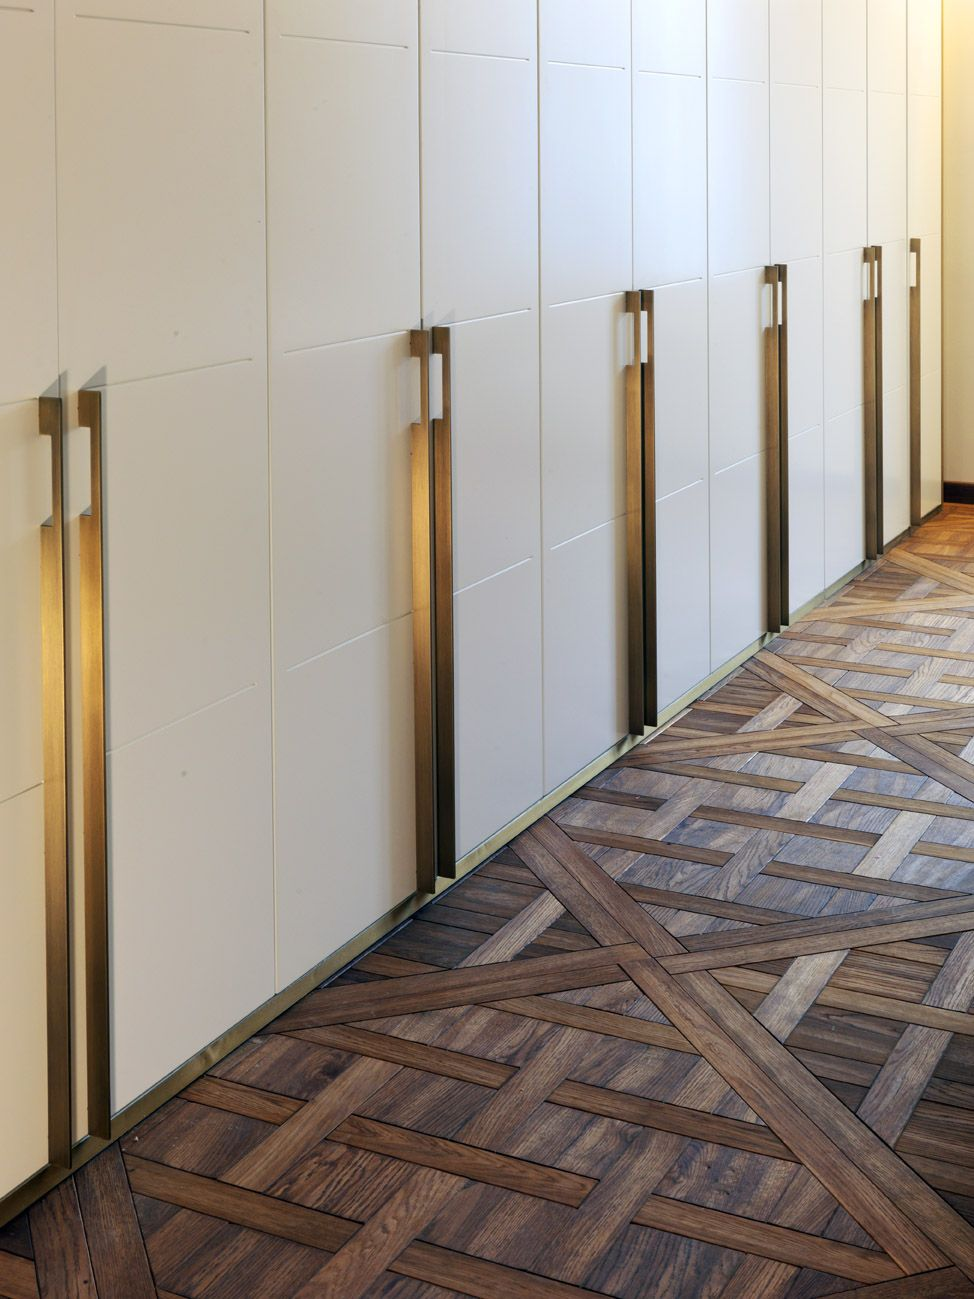 My Favorite Large Cabinet Pulls | Brass handles, Wood flooring and ...